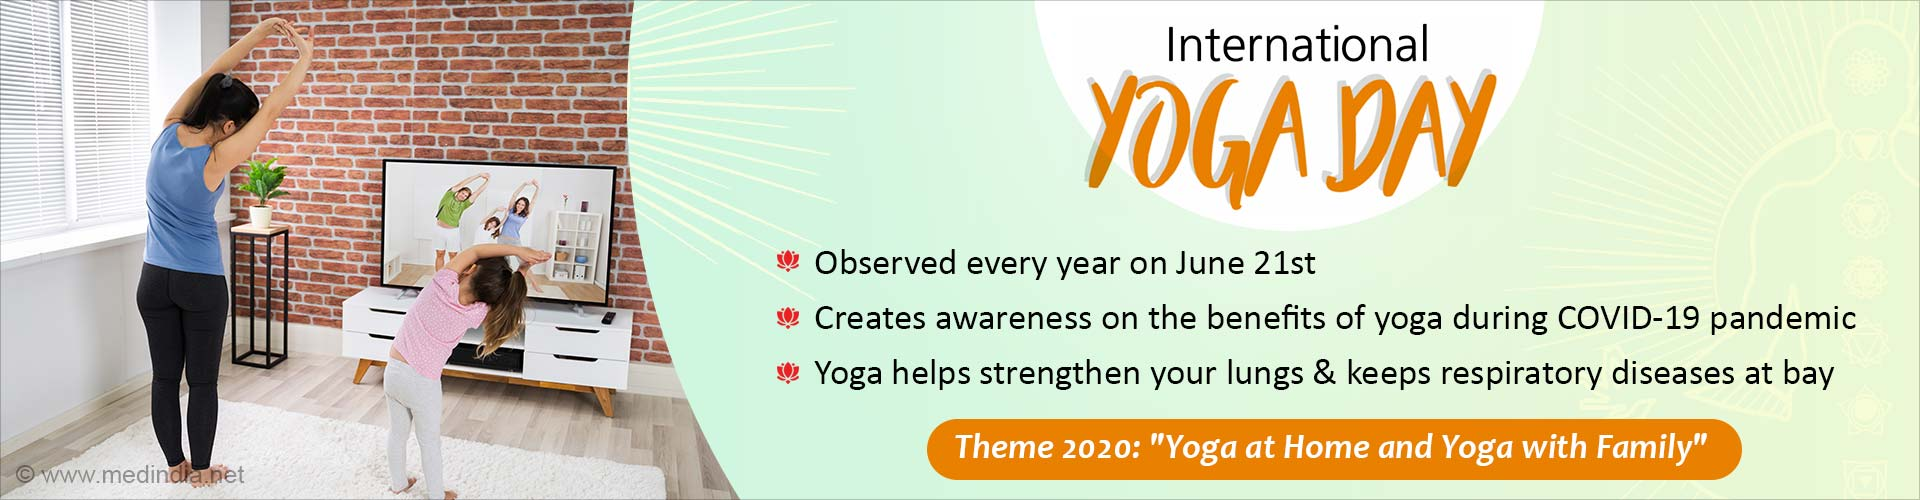 International Yoga Day: Yoga at Home and Yoga With Family